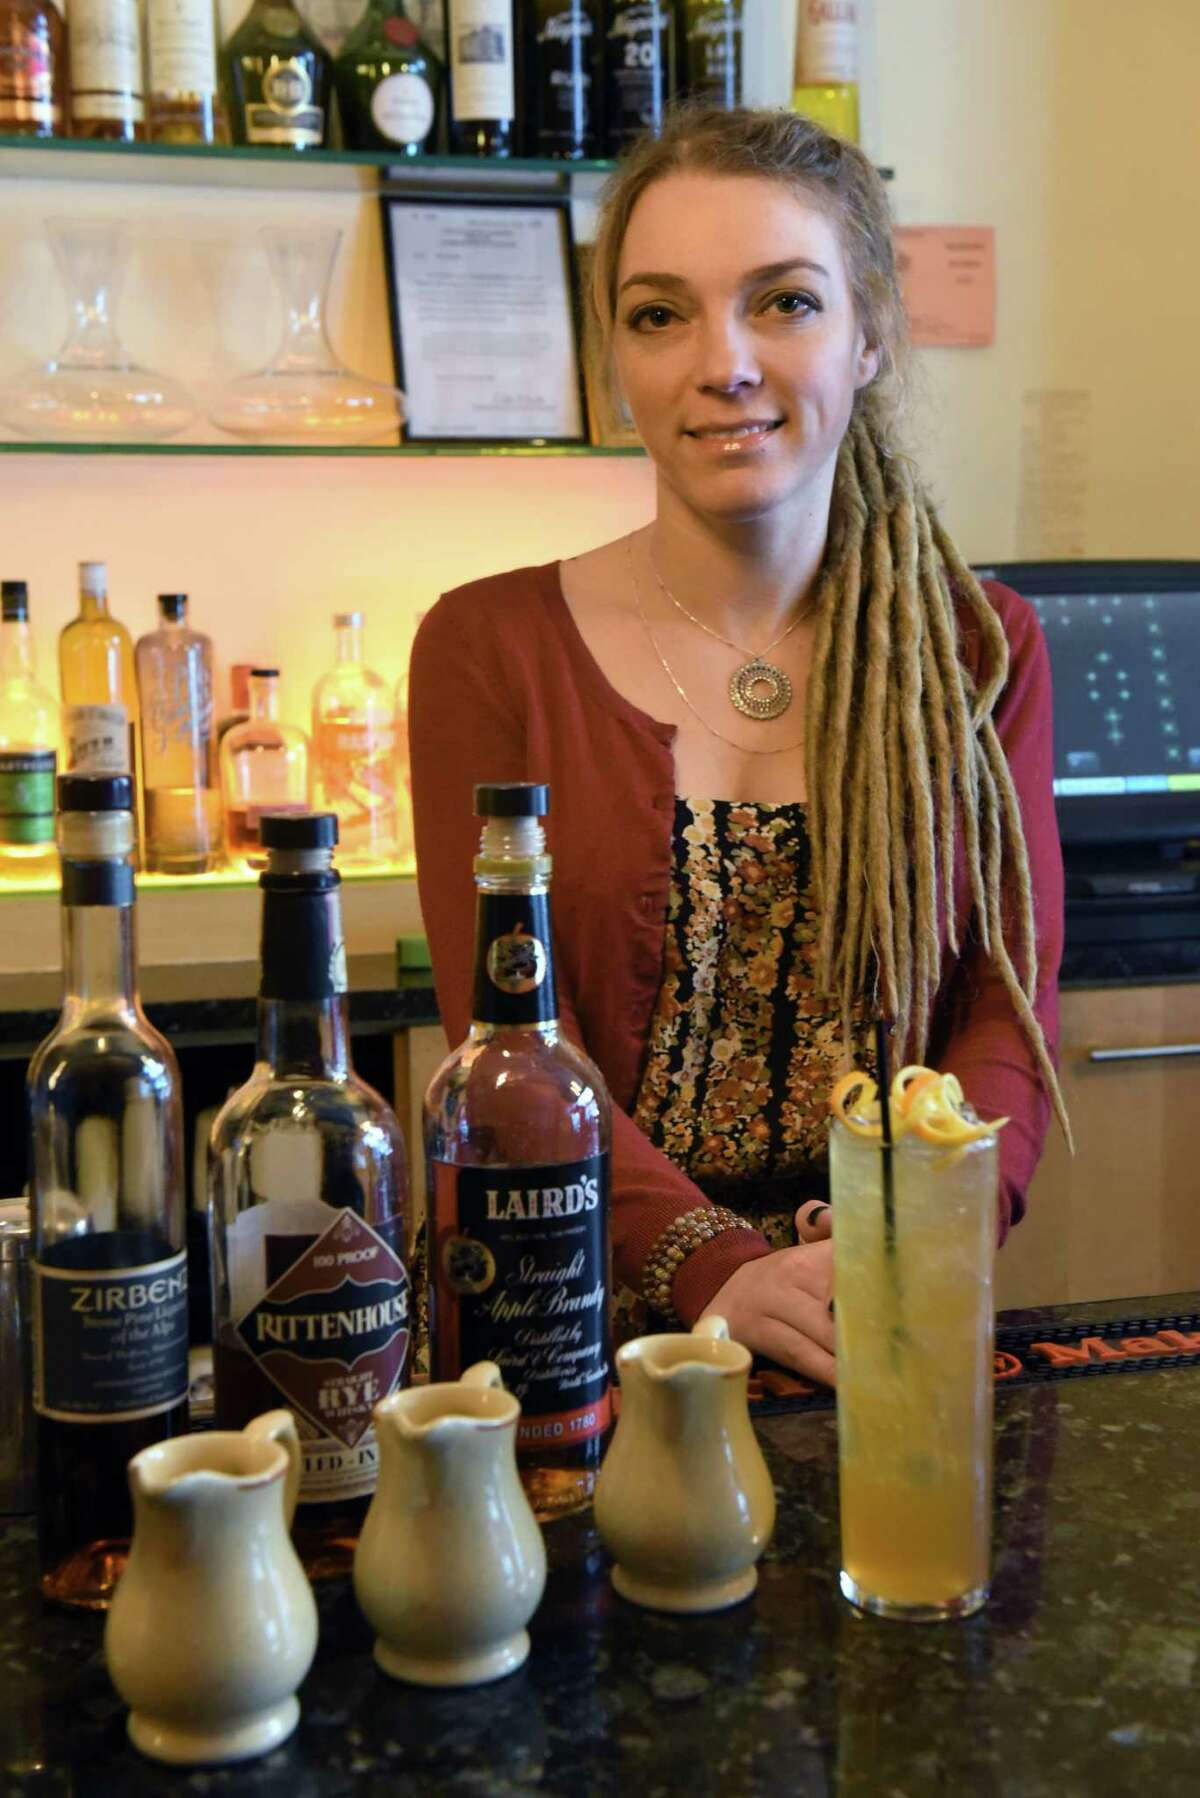 Alli Ferraro bartender at Hamlet & Ghost with her cocktail based on a former U.S. President Gerald Ford recipe on Thursday Dec. 22, 2016 in Saratoga Springs, N.Y. (Michael P. Farrell/Times Union)